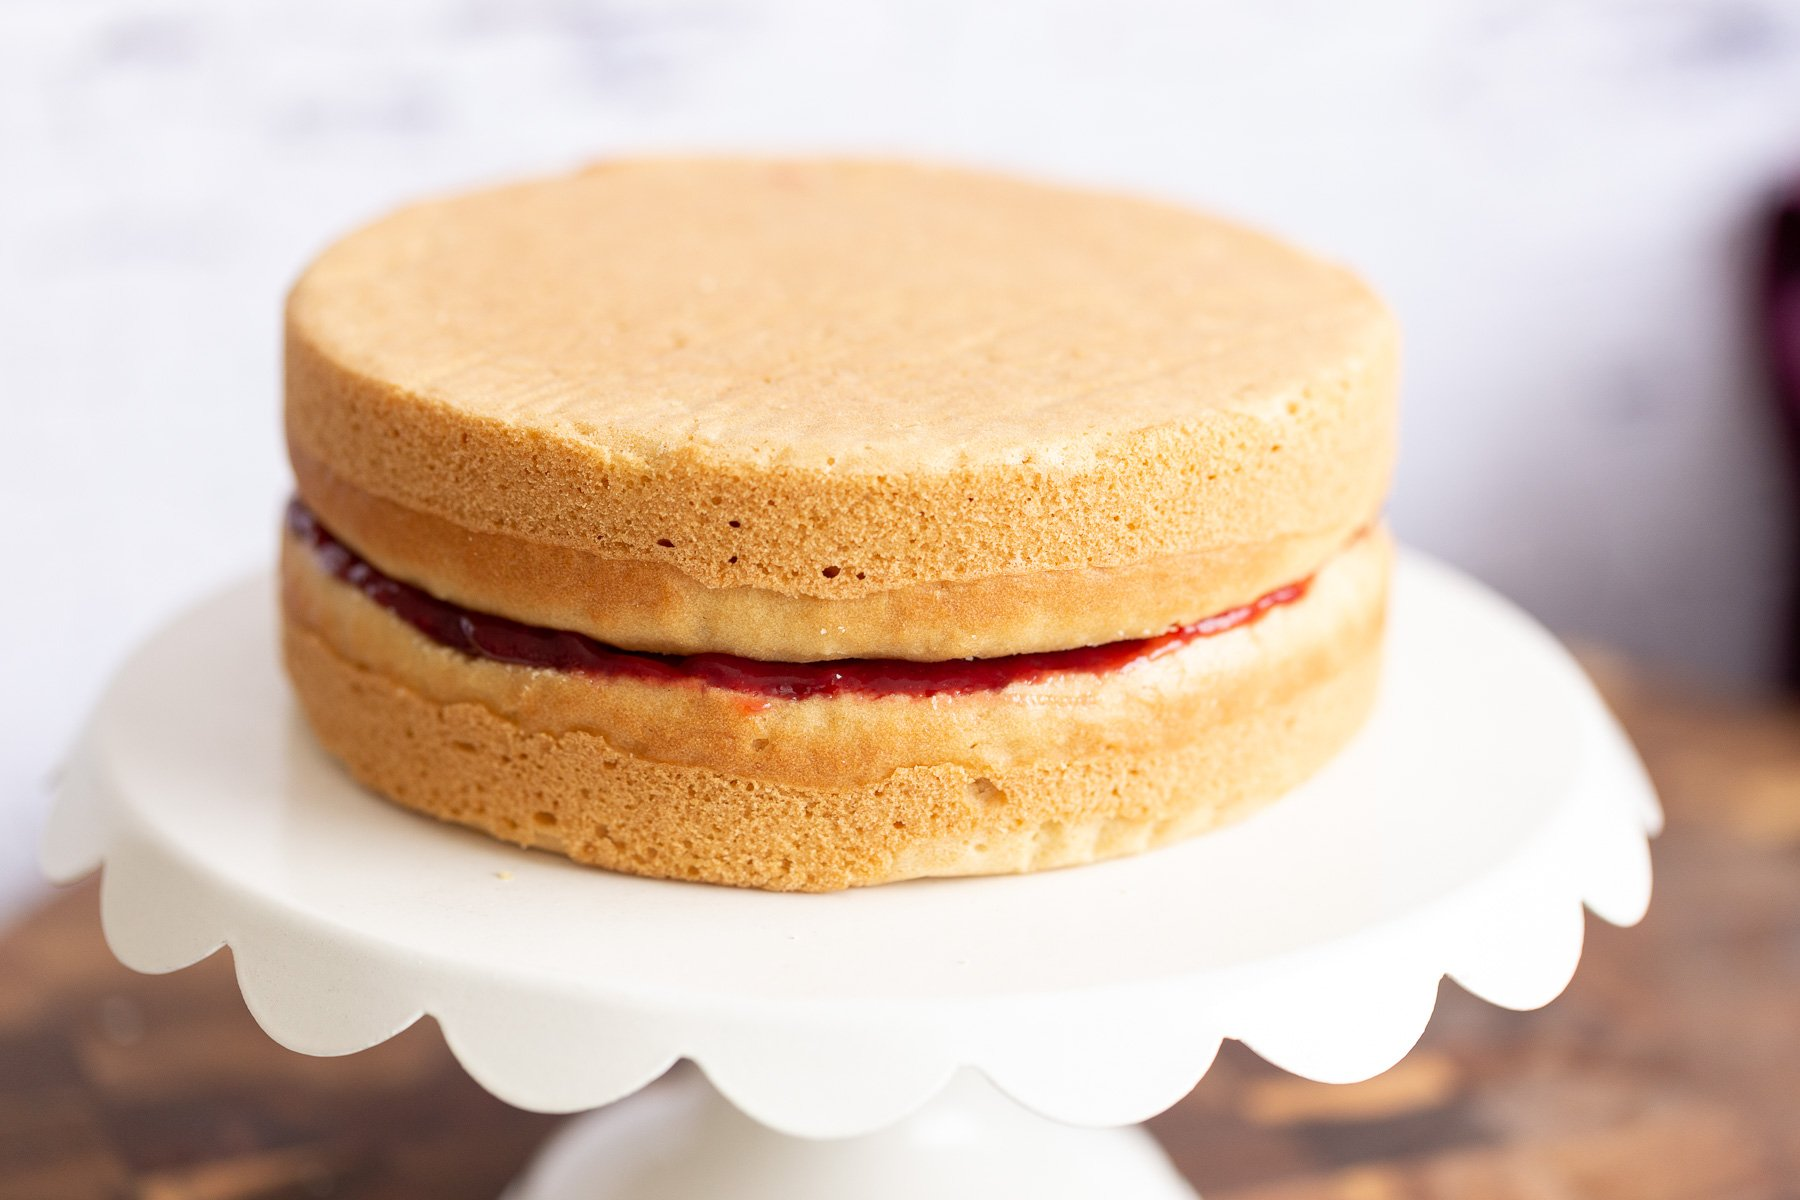 assembled vegan white cake filled with raspberry jam on a cake stand